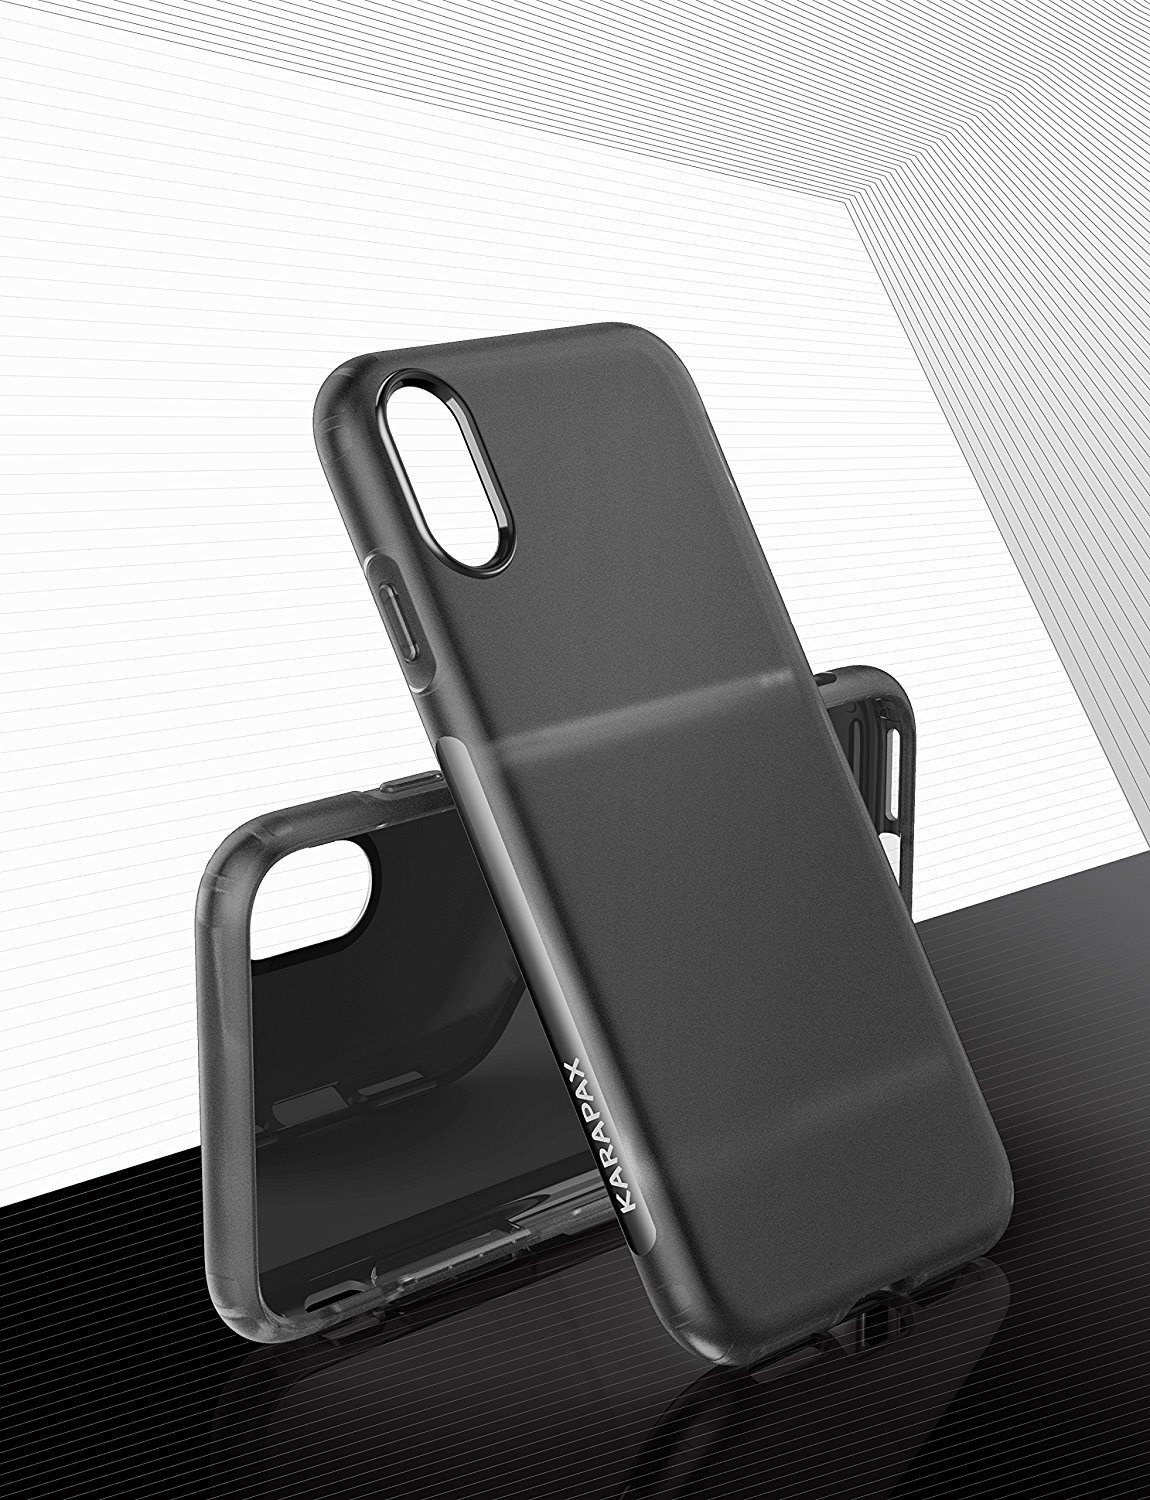 Best Iphone X Cases Folios Covers And Screen Protectors 9to5mac Case 9 Spigen Anti Shock With Stand Tough Armor Original Casing Anker 2